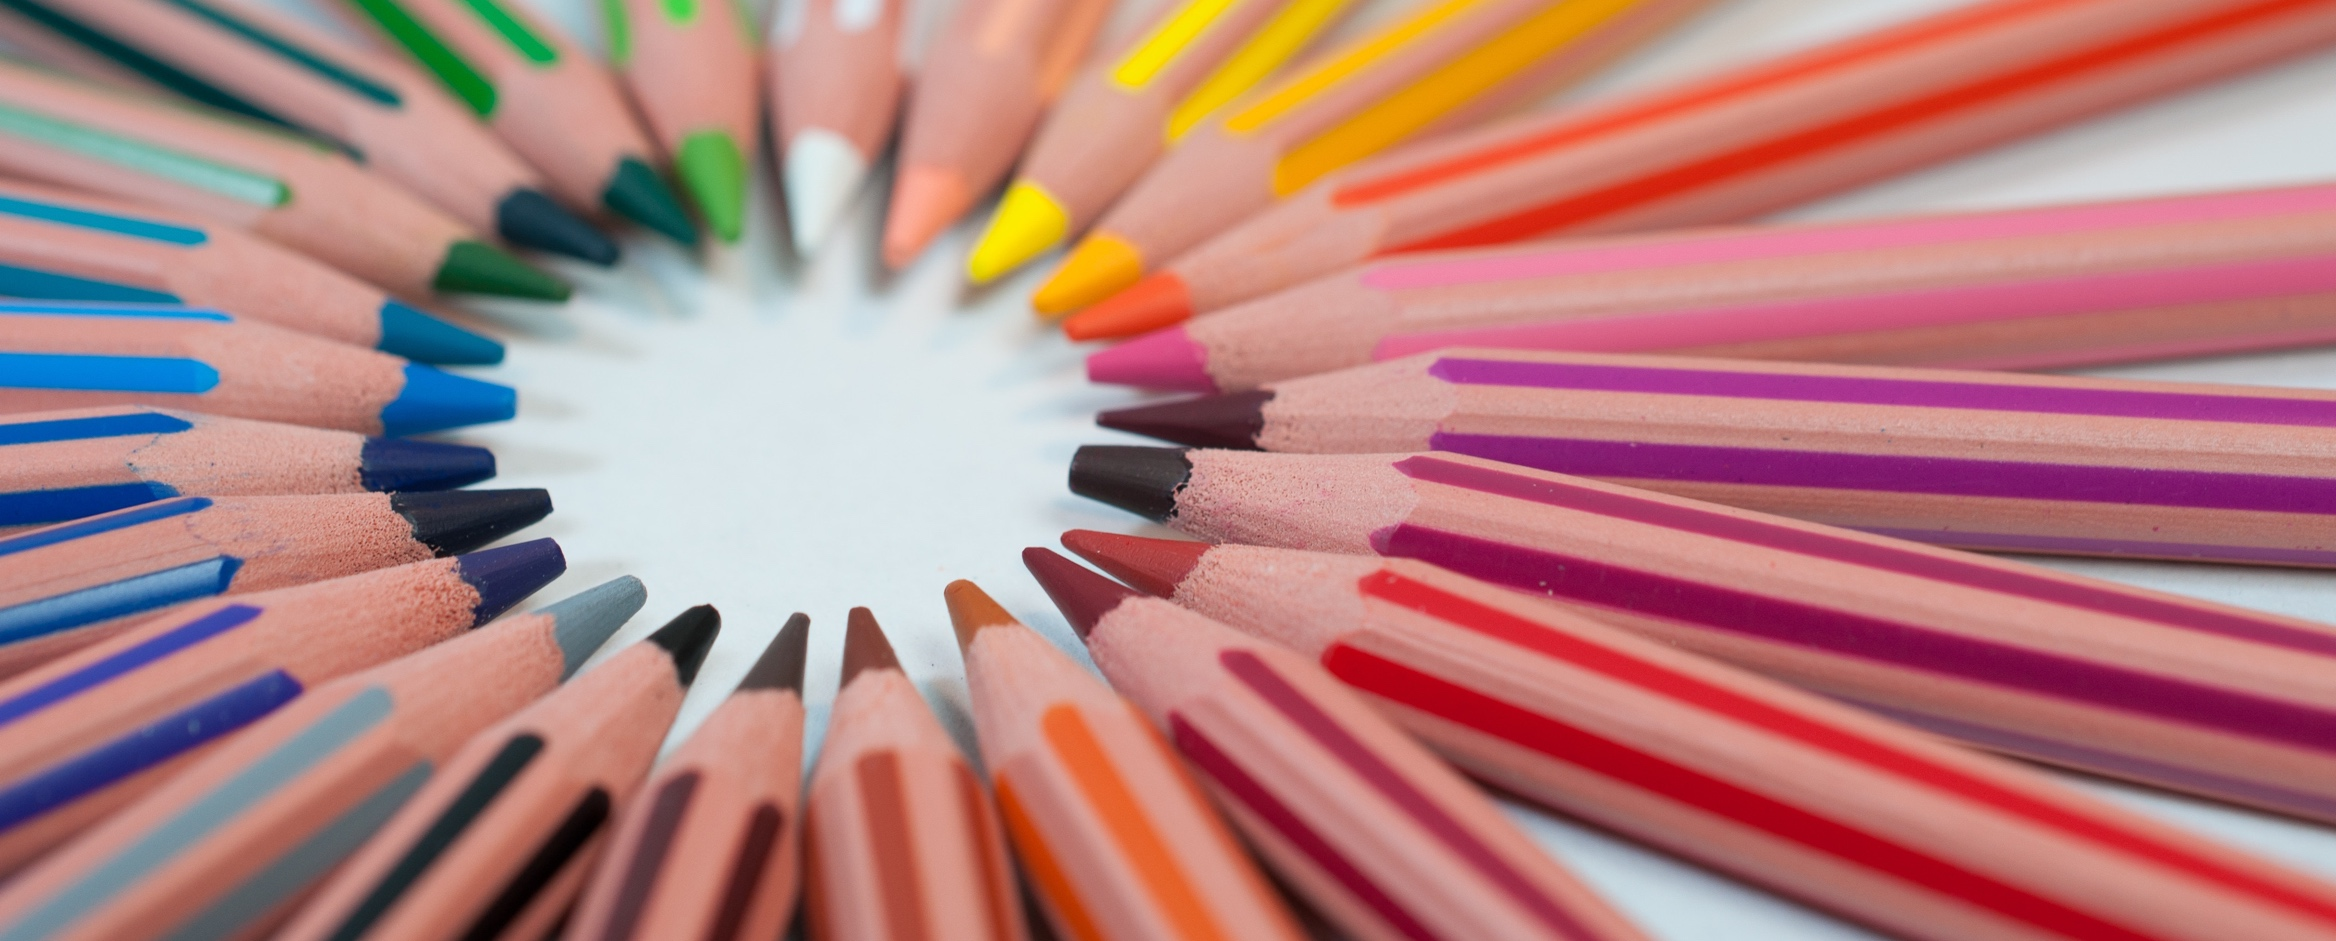 A circle of pencils, each a different shade